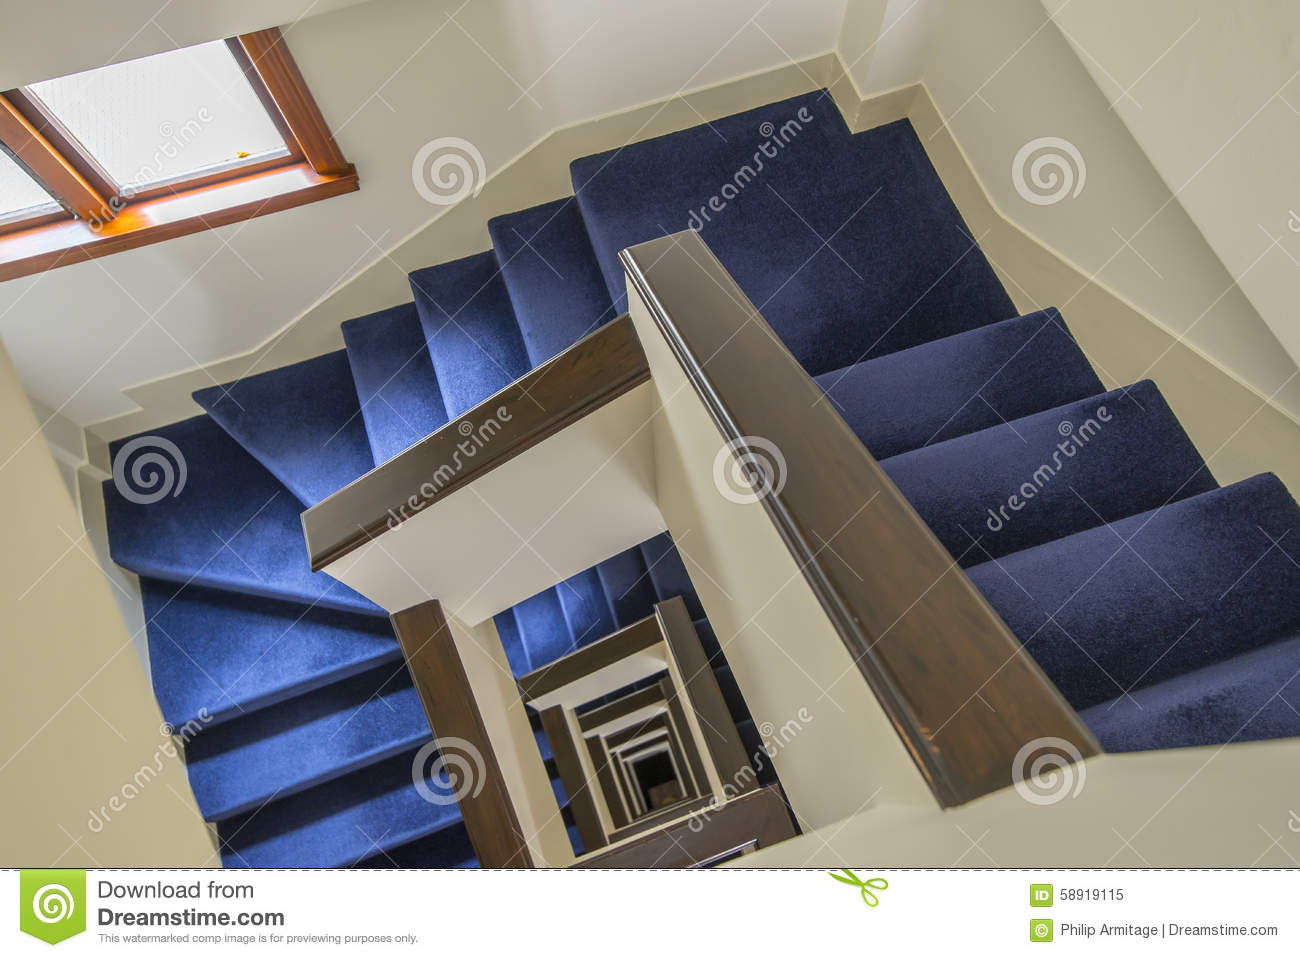 Download Architectural Stair Abstract Stock Image   Image Of Staircase,  Building: 58919115